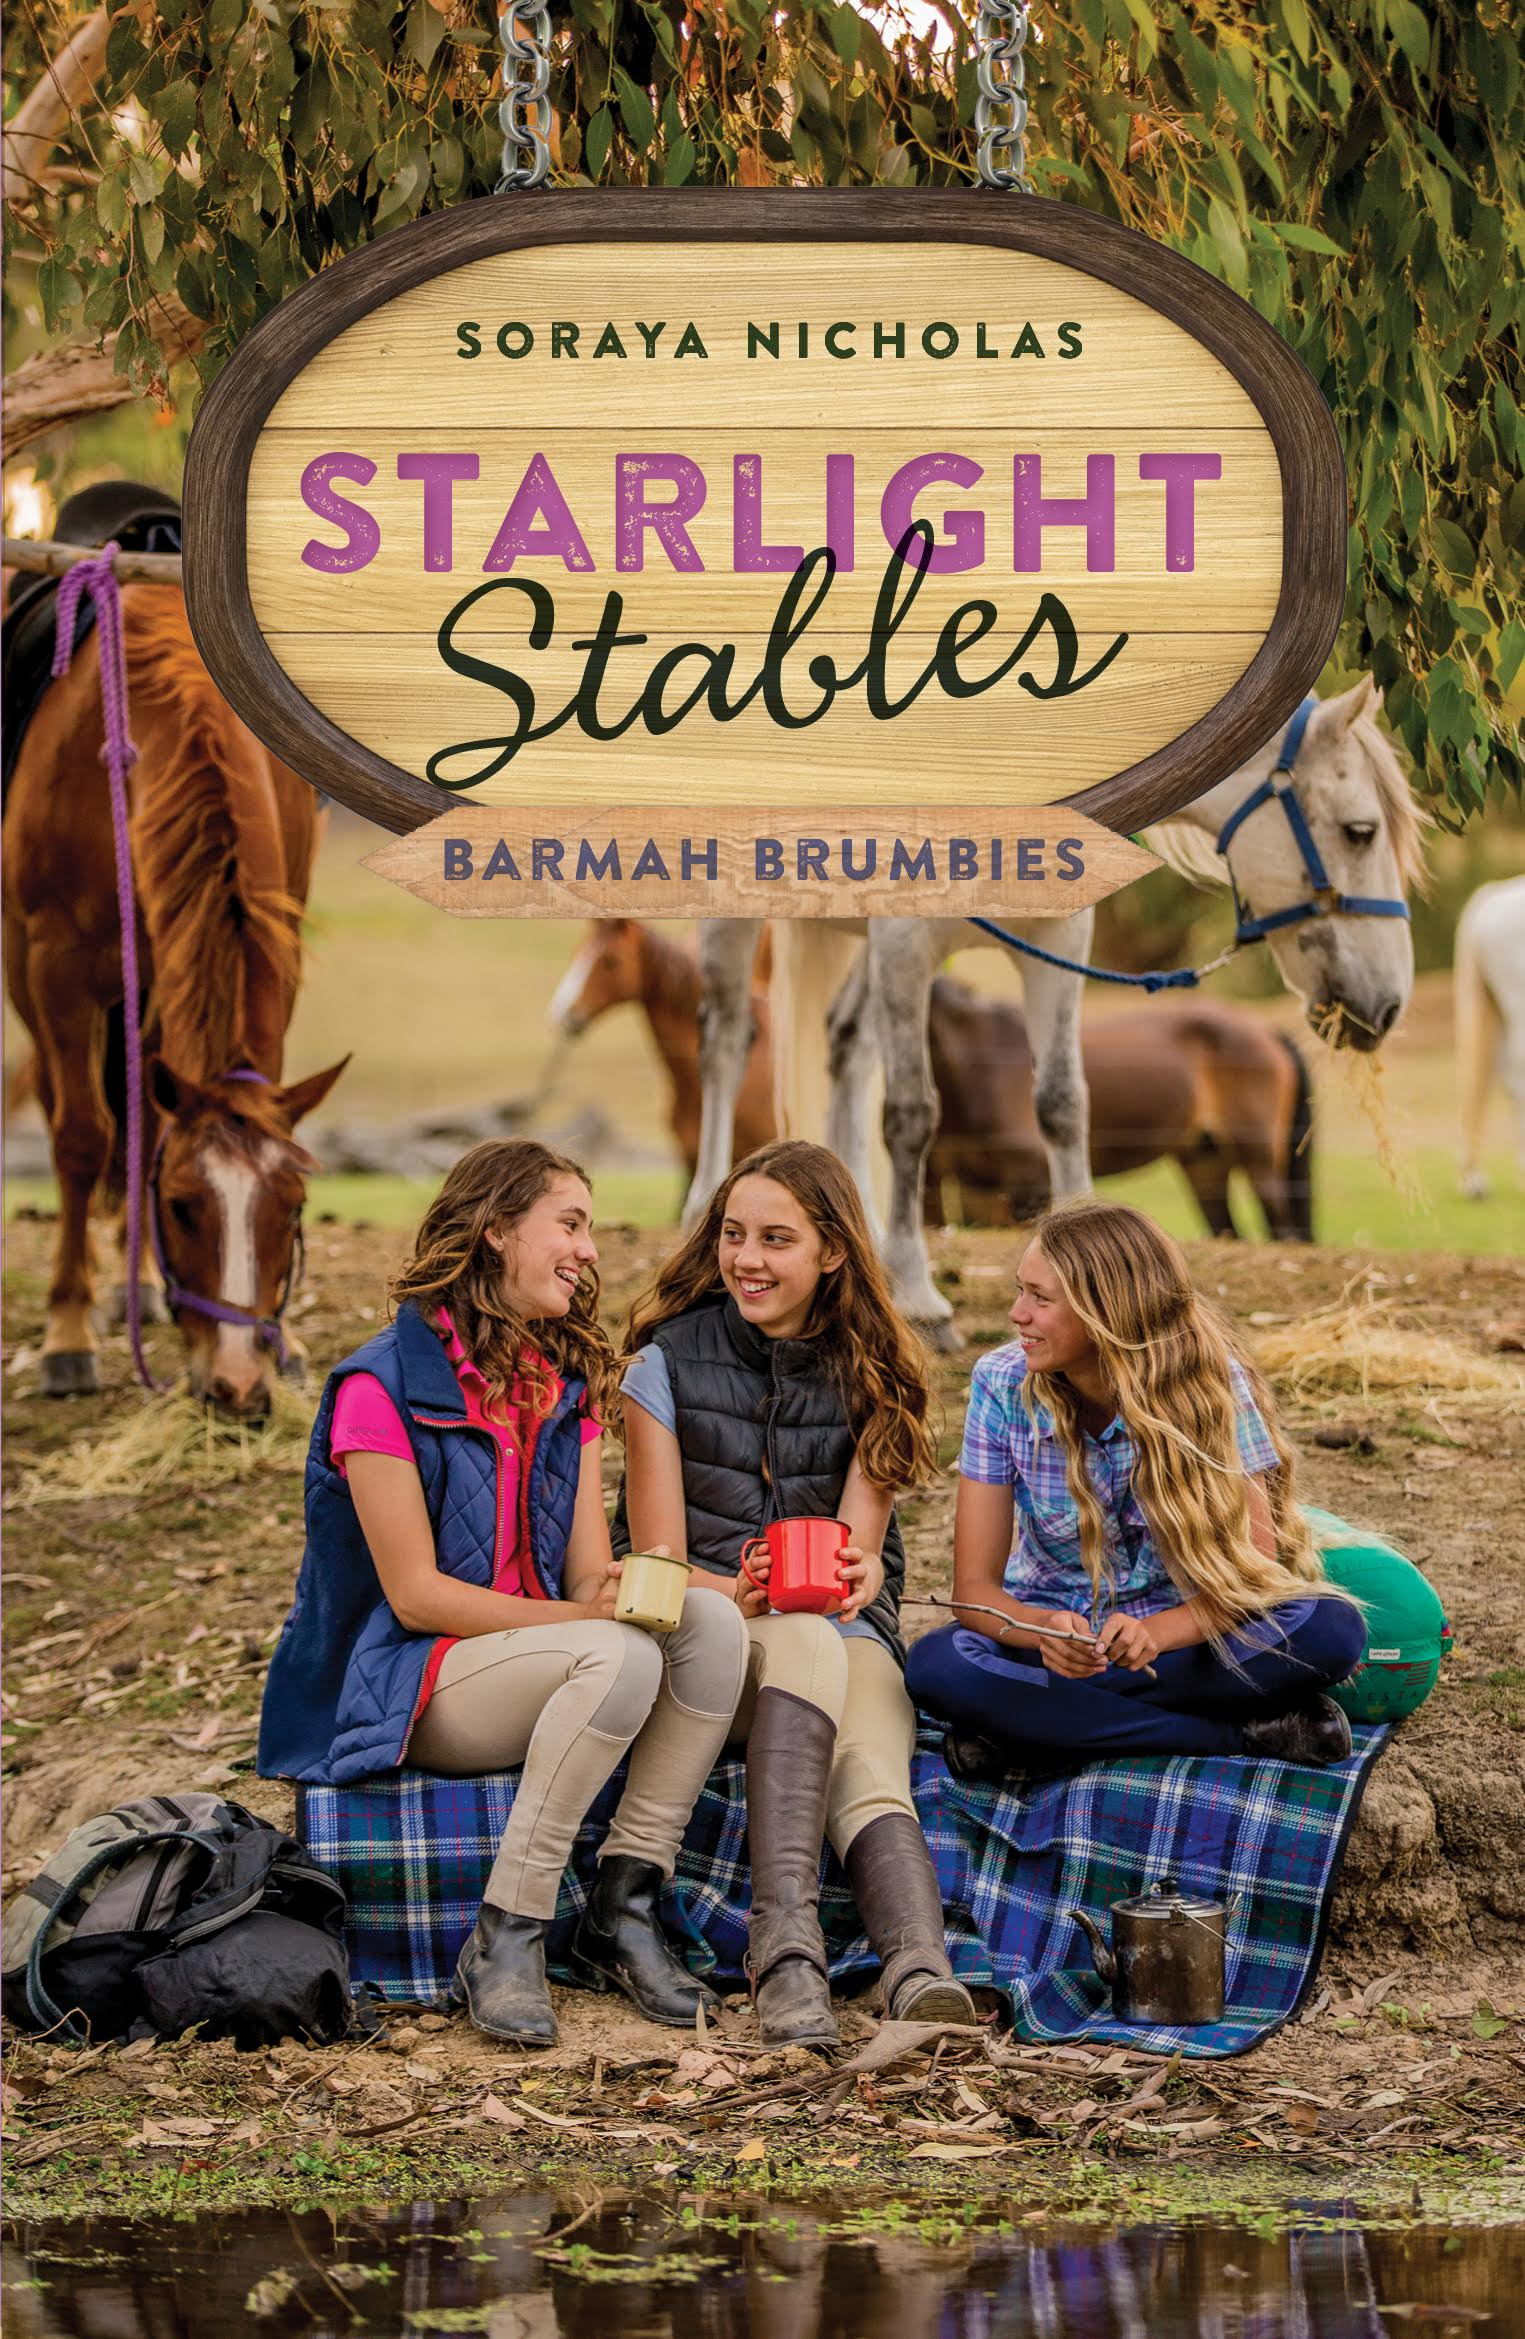 Starlight Stables: Barmah Brumbies by Soraya Nicholas